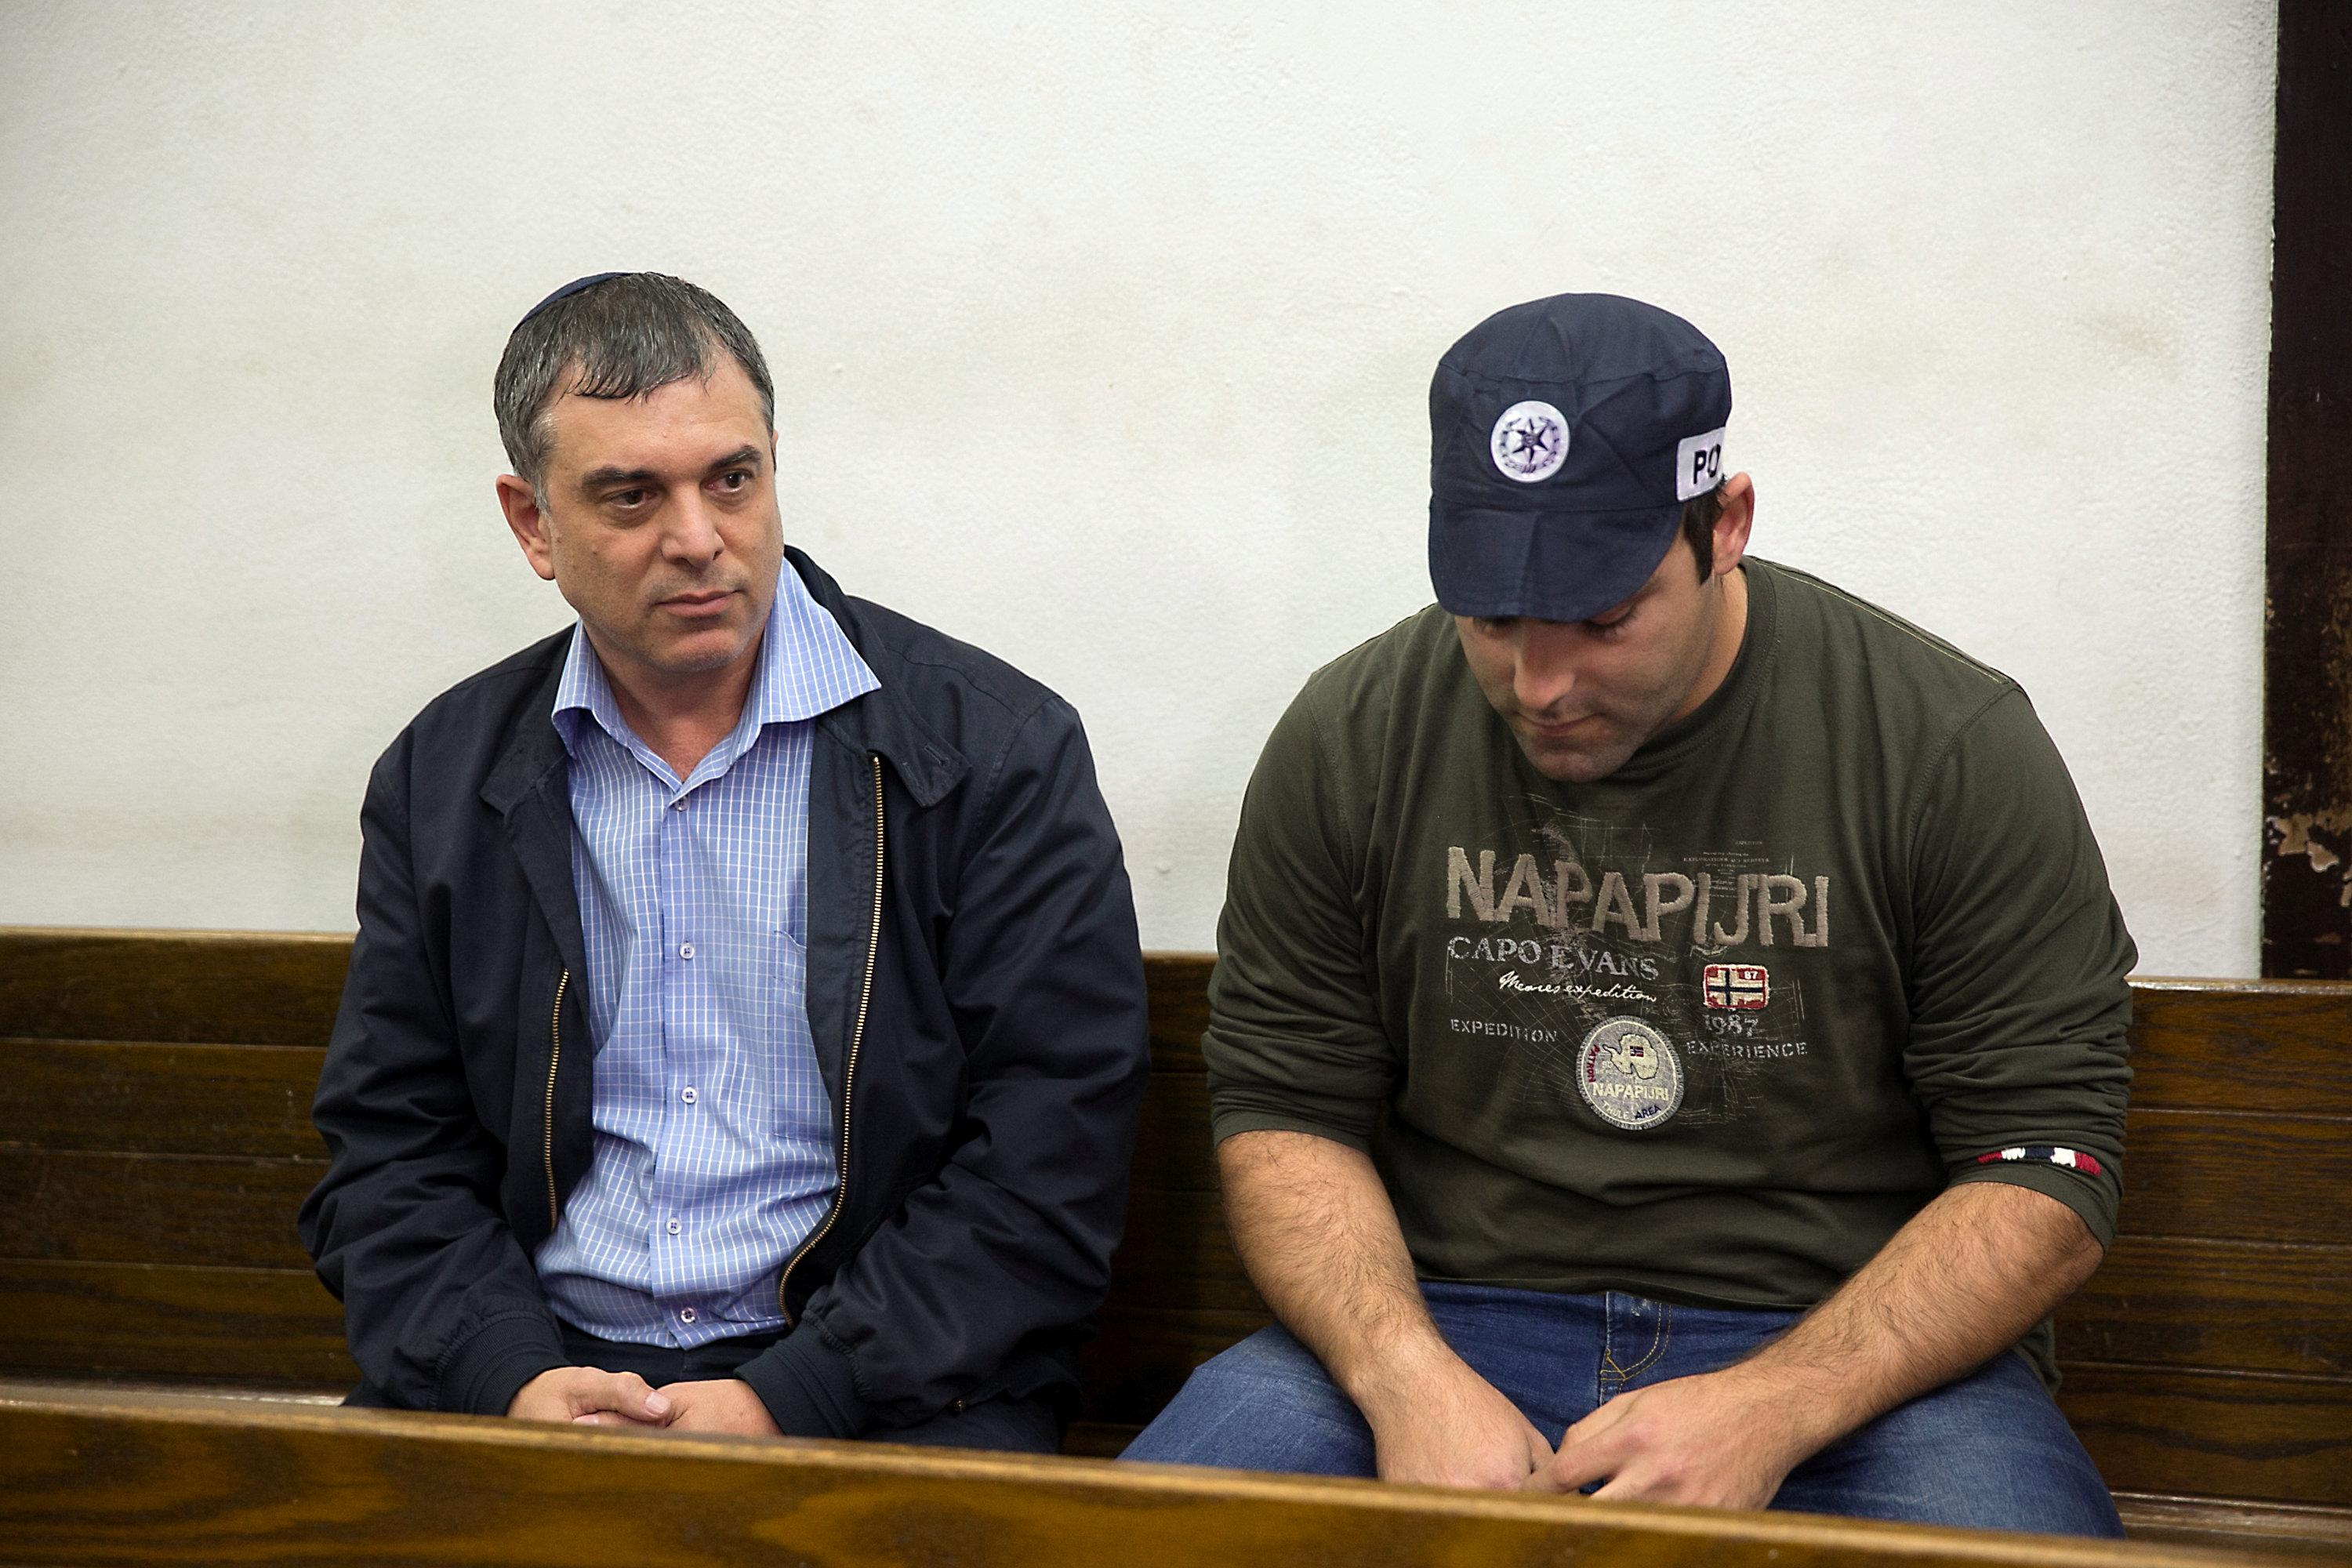 Shlomo Filber (L) sits at the Magistrate Court during his remand in Tel Aviv, Israel, February 18, 2018.  Stringer